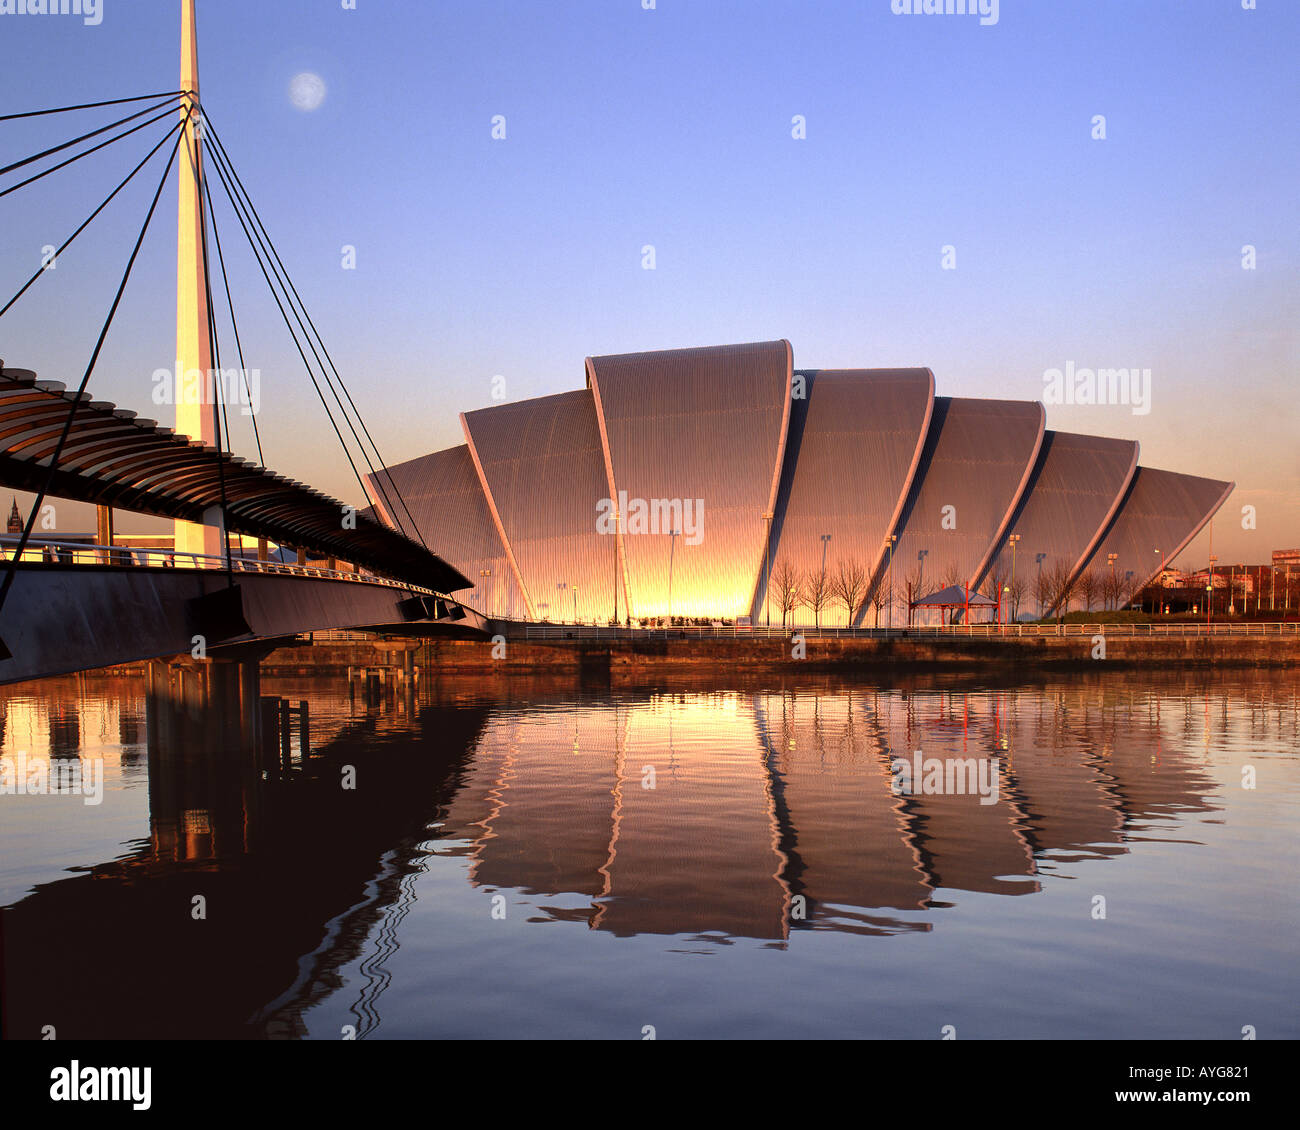 GB - Escocia: Scottish Exhibition and Conference Centre en Glasgow Imagen De Stock